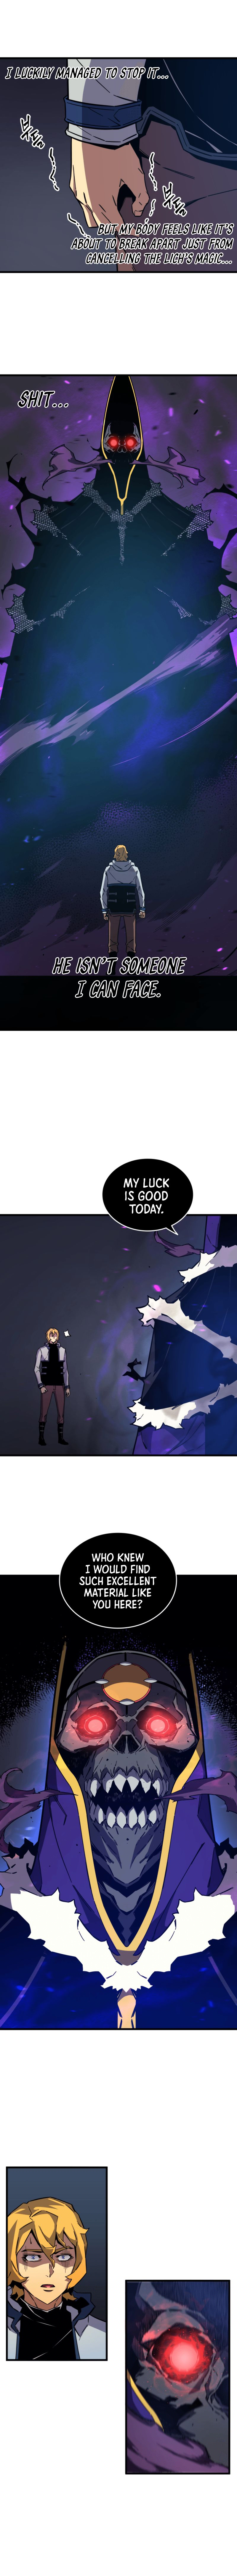 The Great Mage Returns After 4000 Years - chapter 14-eng-li